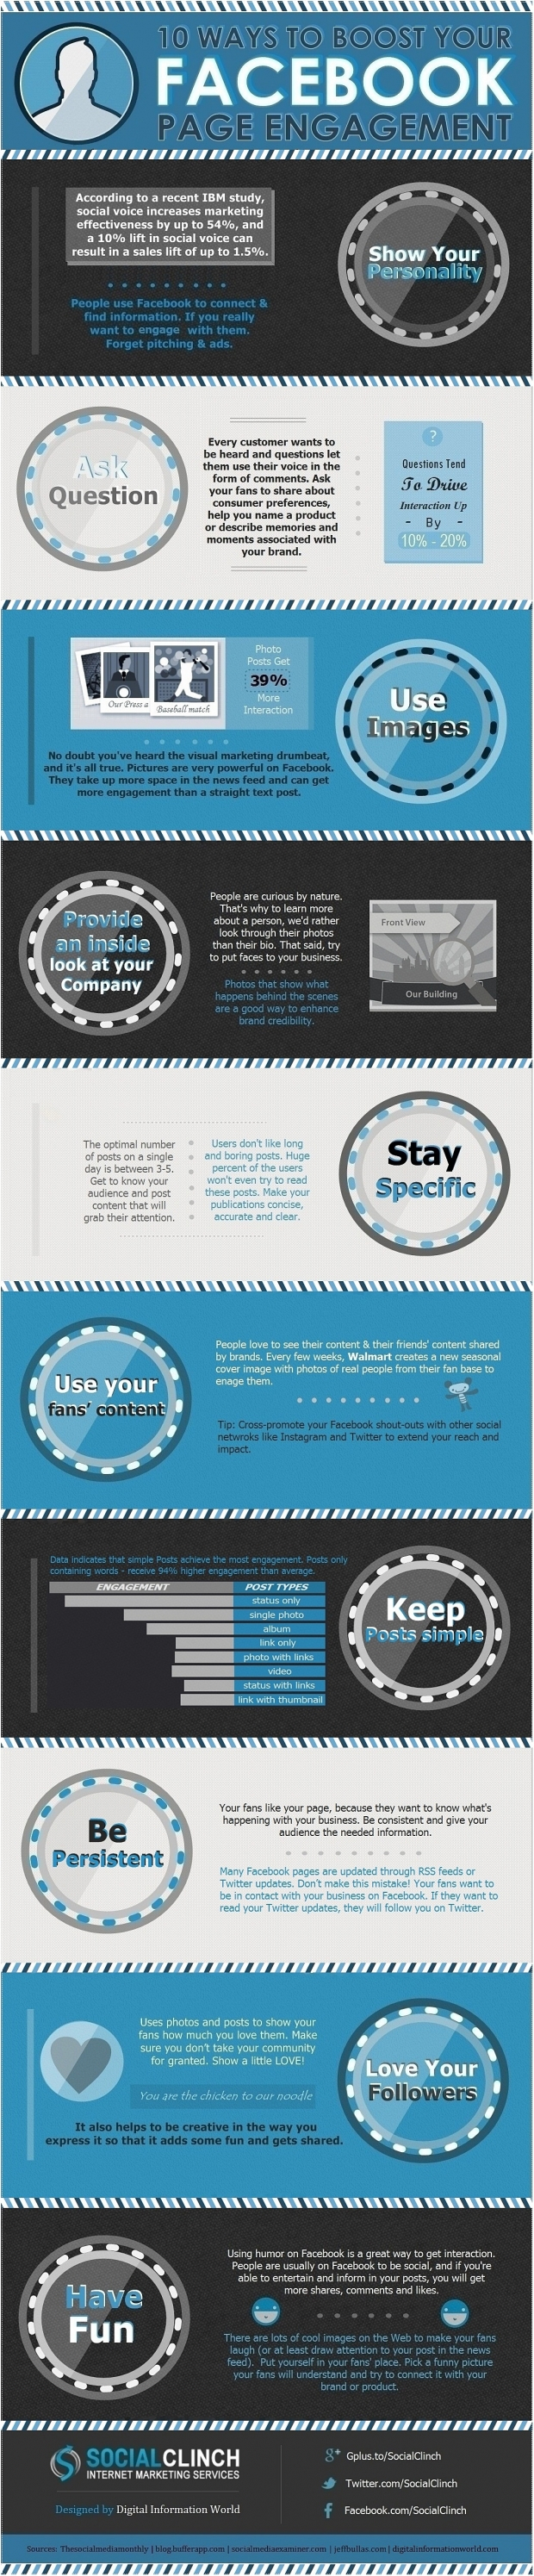 10-Ways-To-Boost-Your-Facebook-Page-Engagement-infographic-infographic-1-620x2990